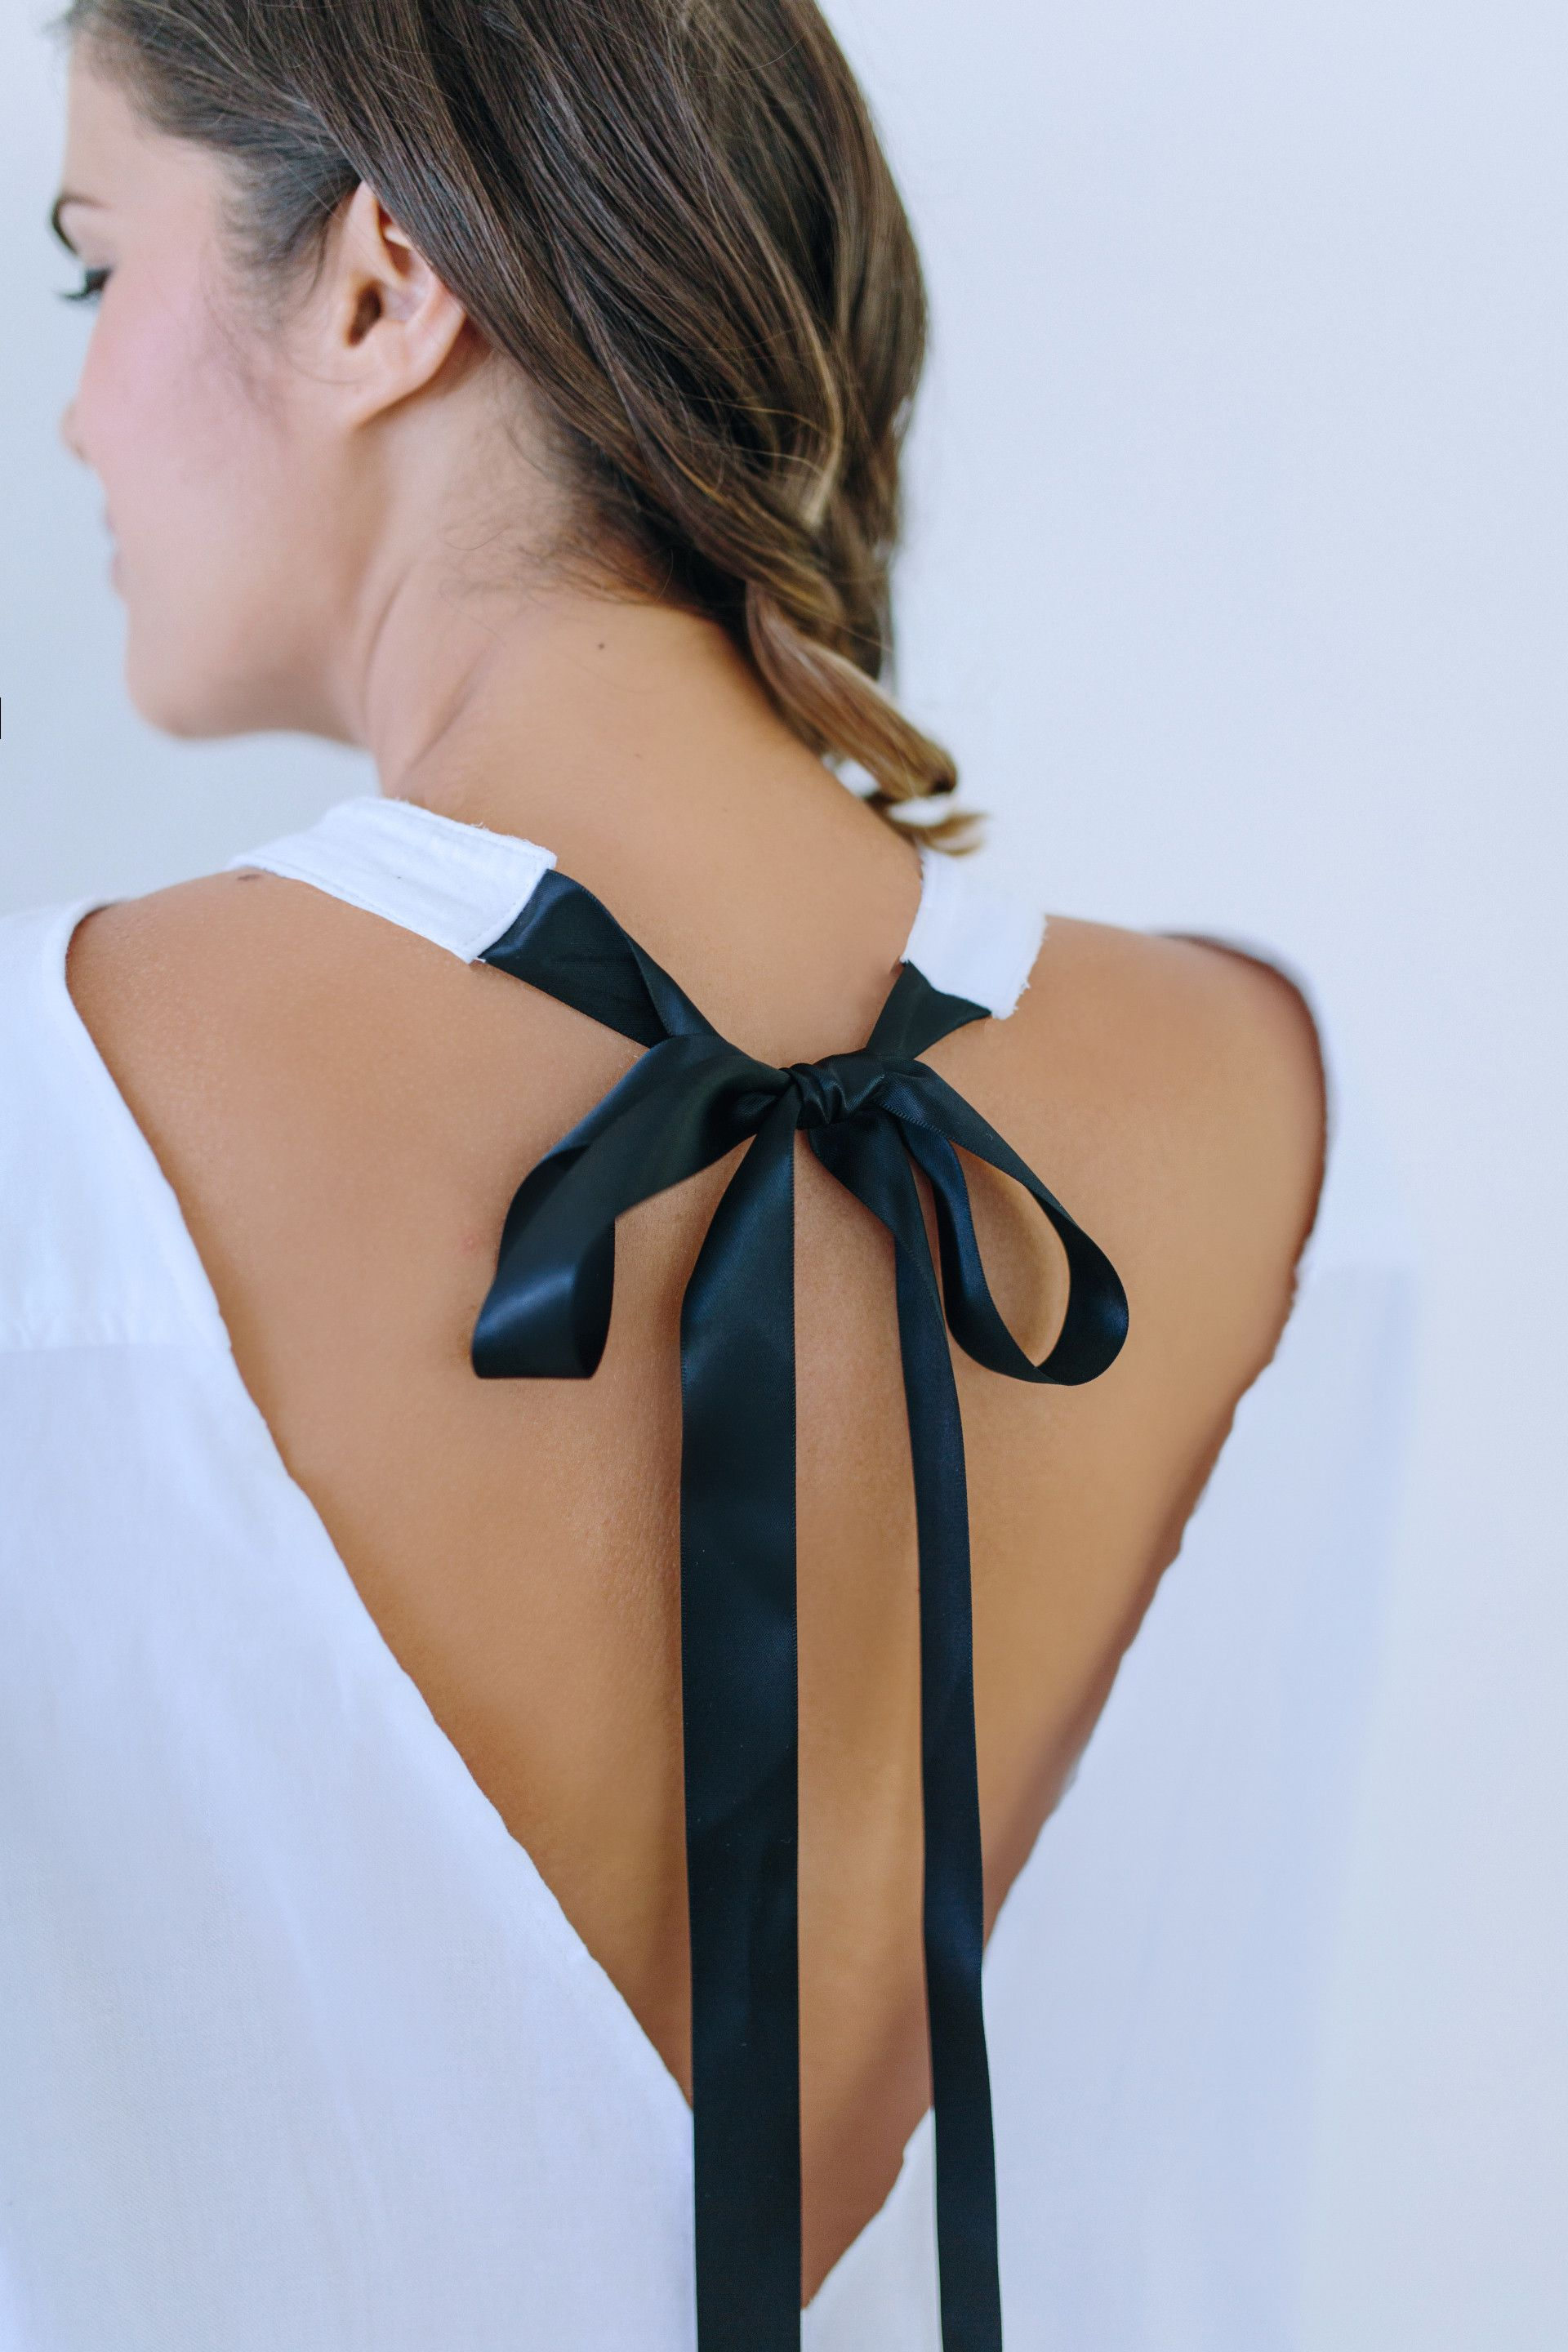 Wear You Would an Oversized Bow?